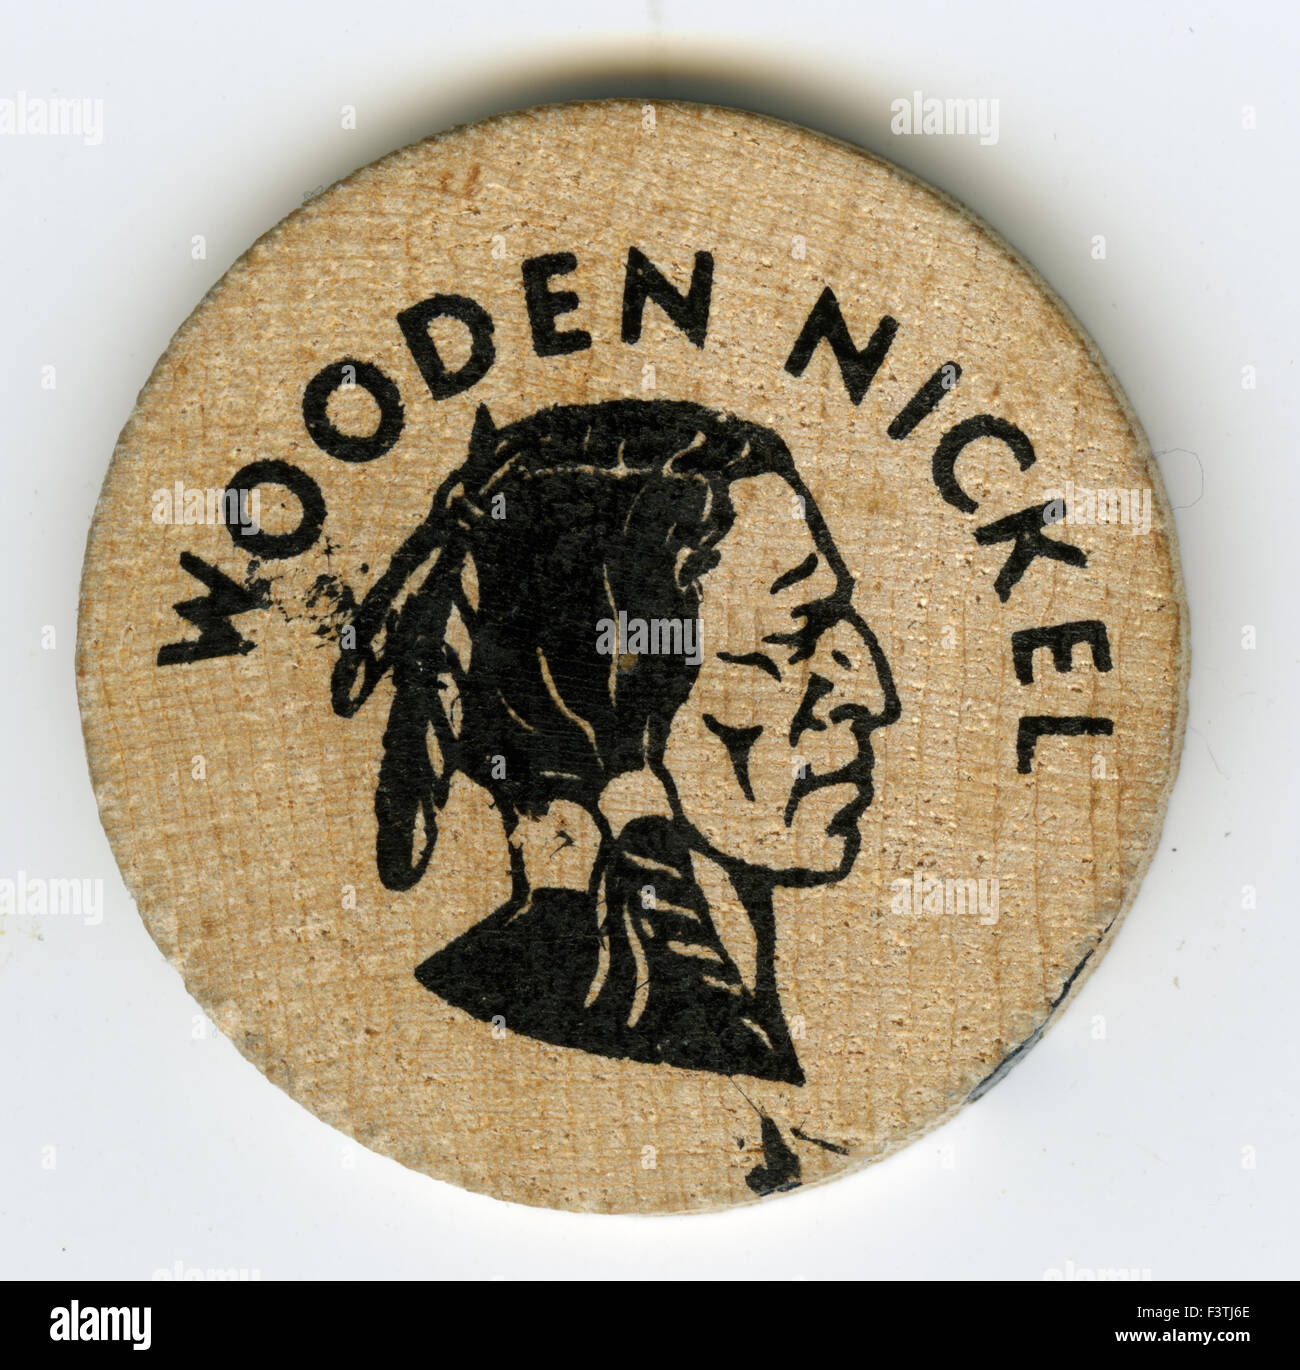 Wooden nickel given to other soldiers by members of Company H 75th Rangers LRRPs during the Vietnam War - Stock Image